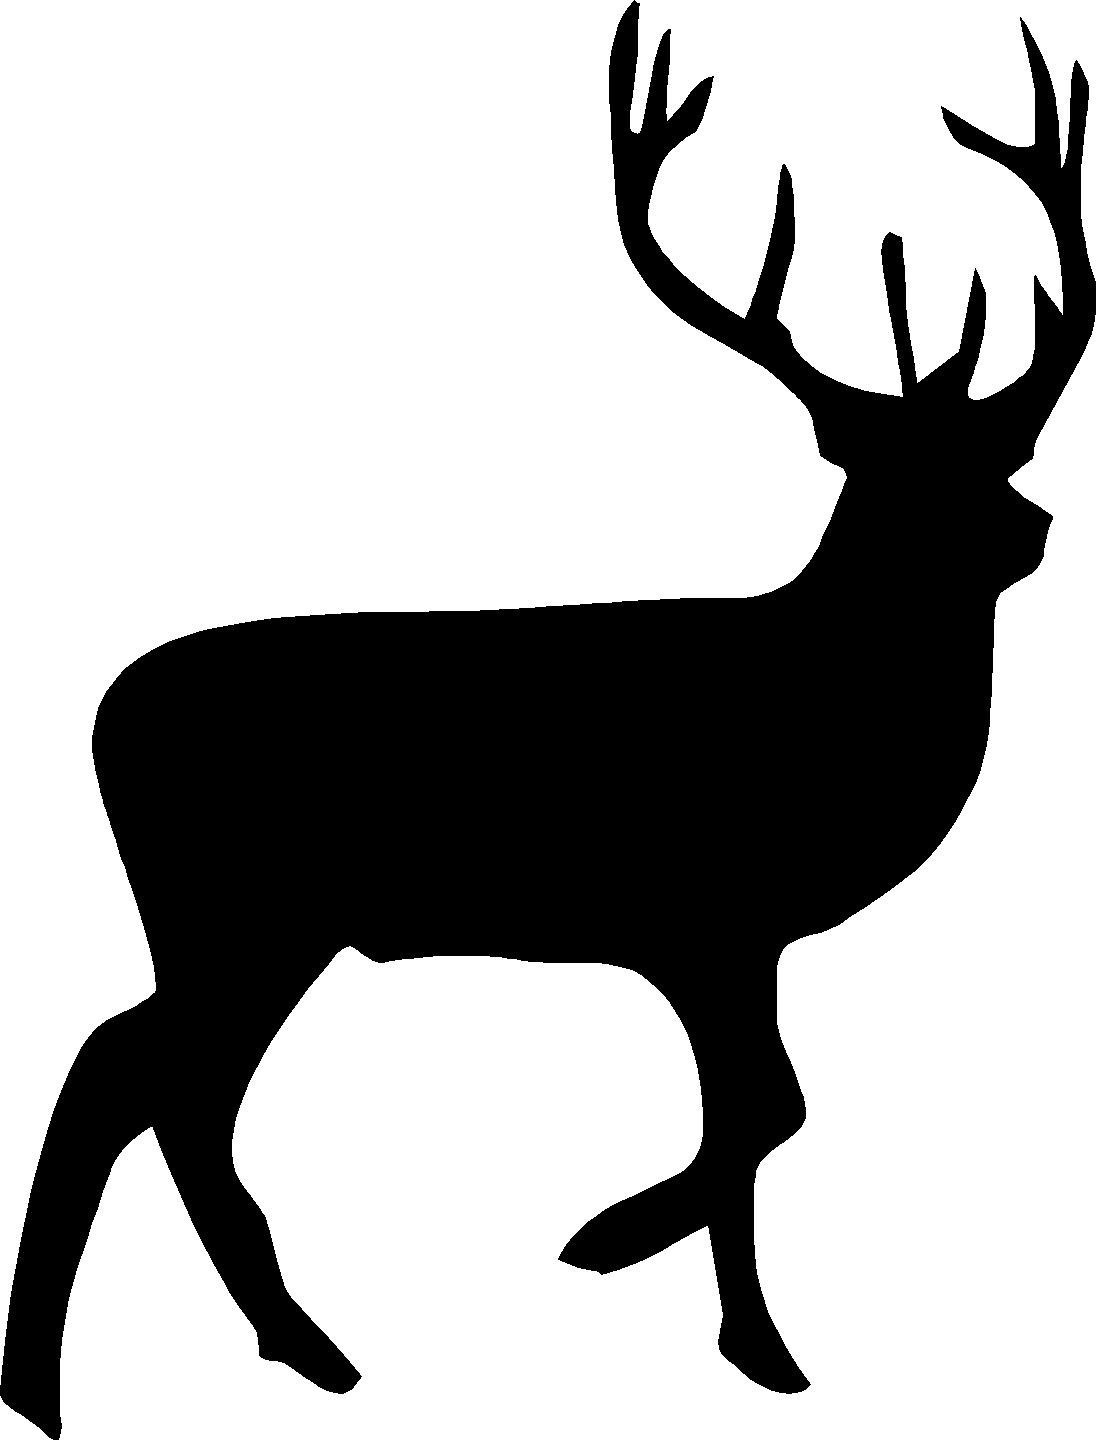 Whitetail Deer Illustrations, Royalty-Free Vector Graphics